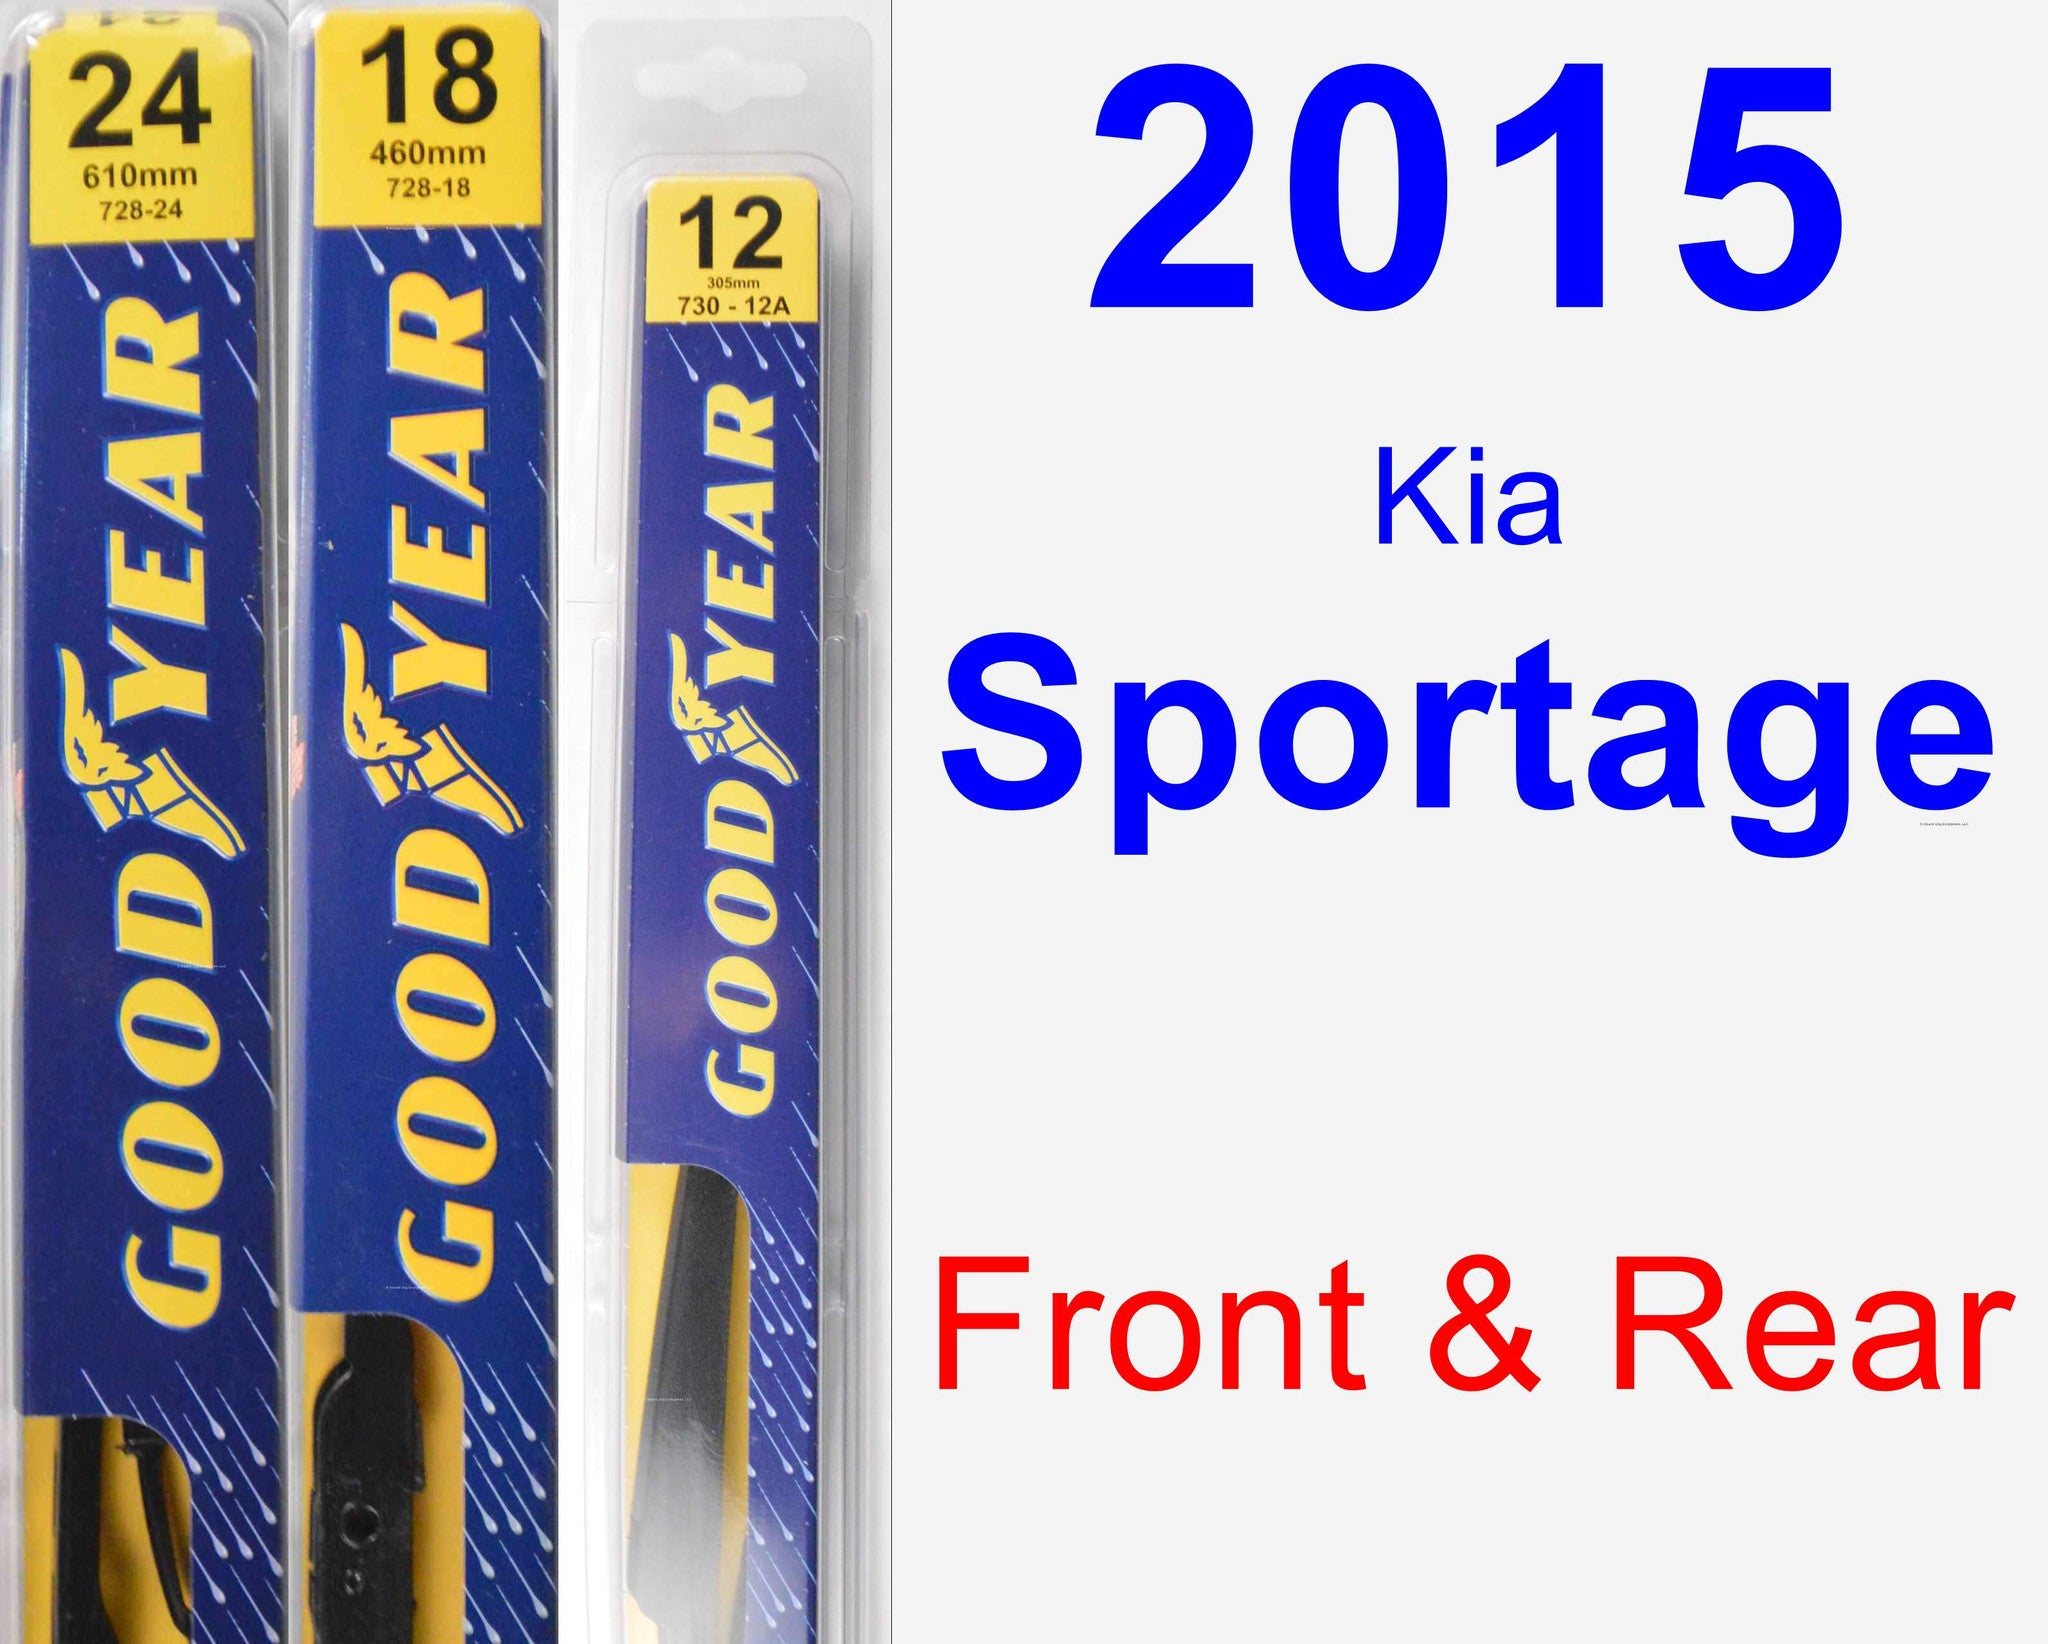 Front & Rear Wiper Blade Pack for 2015 Kia Sportage - Premium